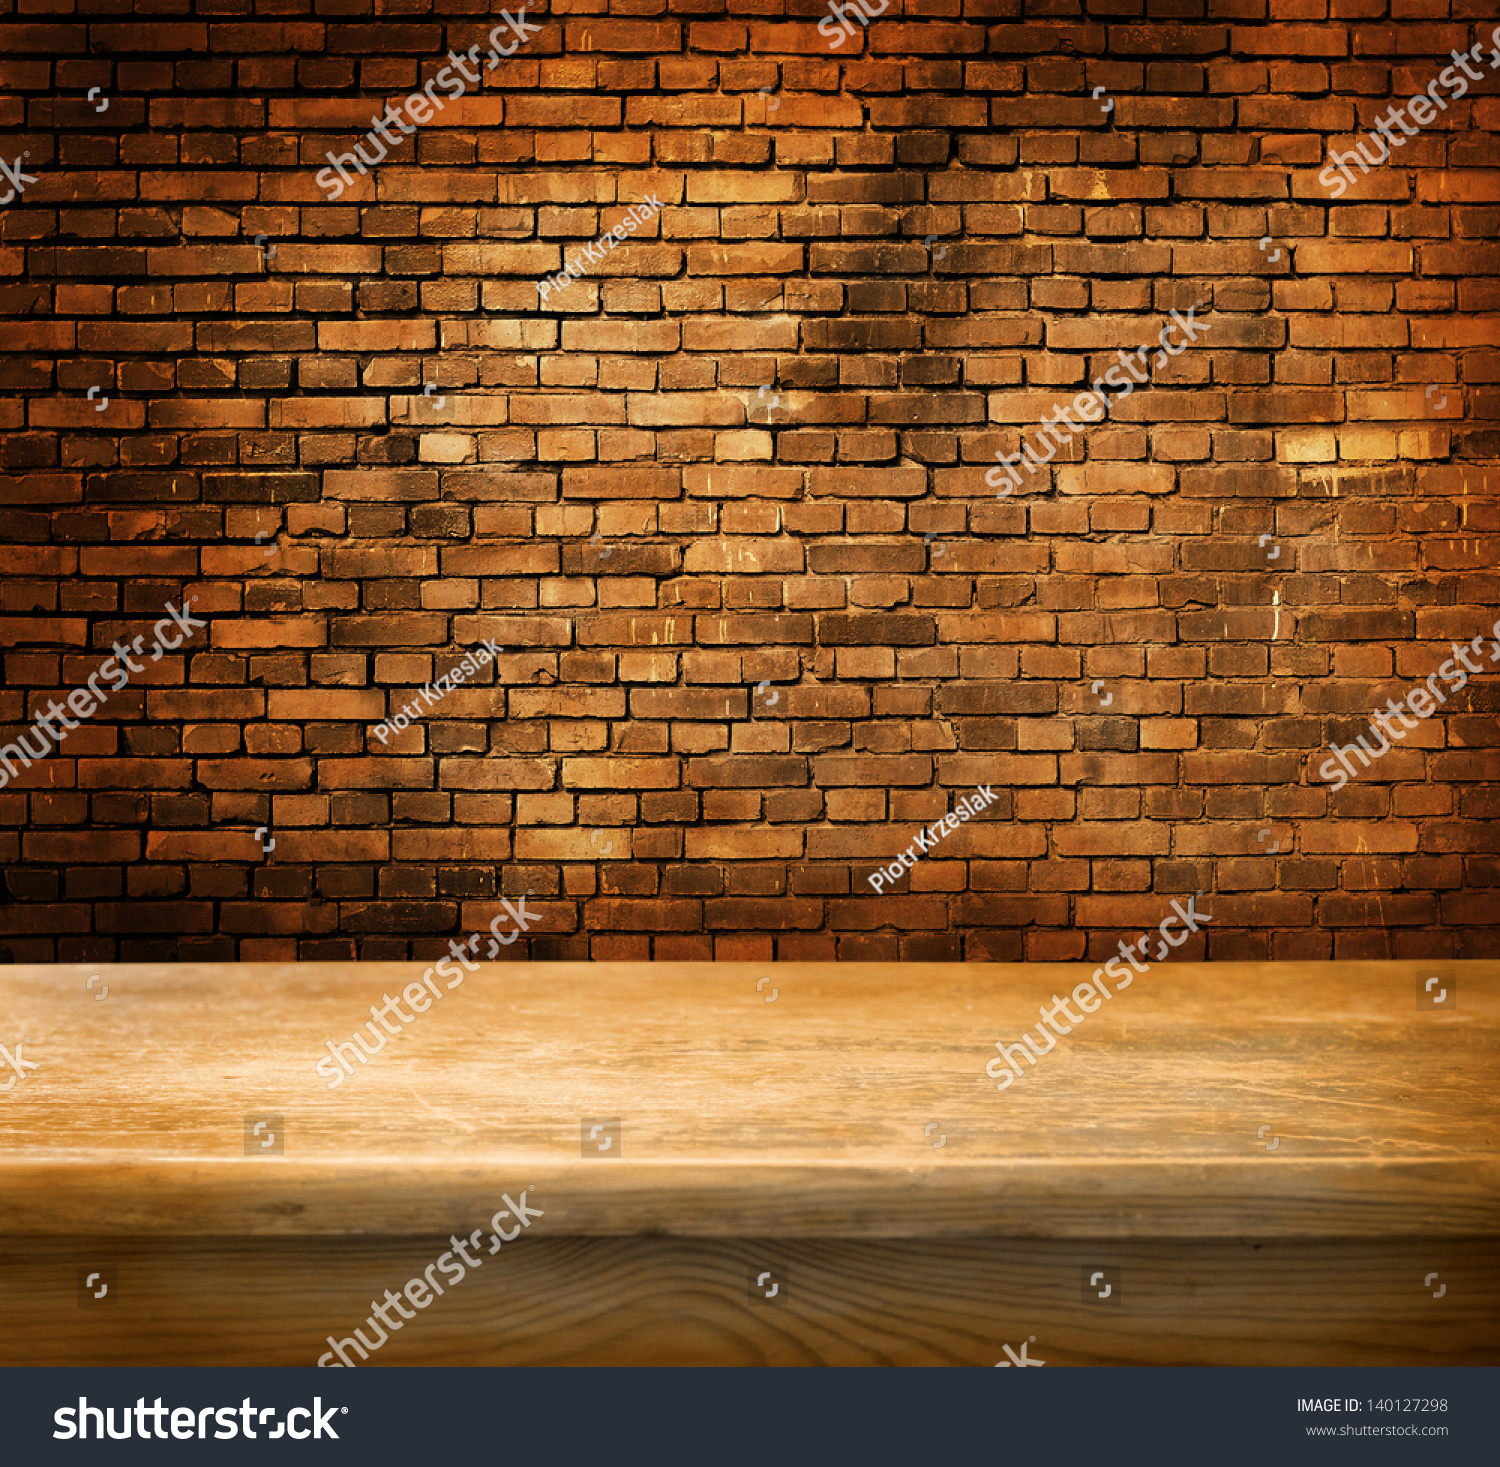 Background image table - Empty Table And Brick Wall In Background Great For Product Display